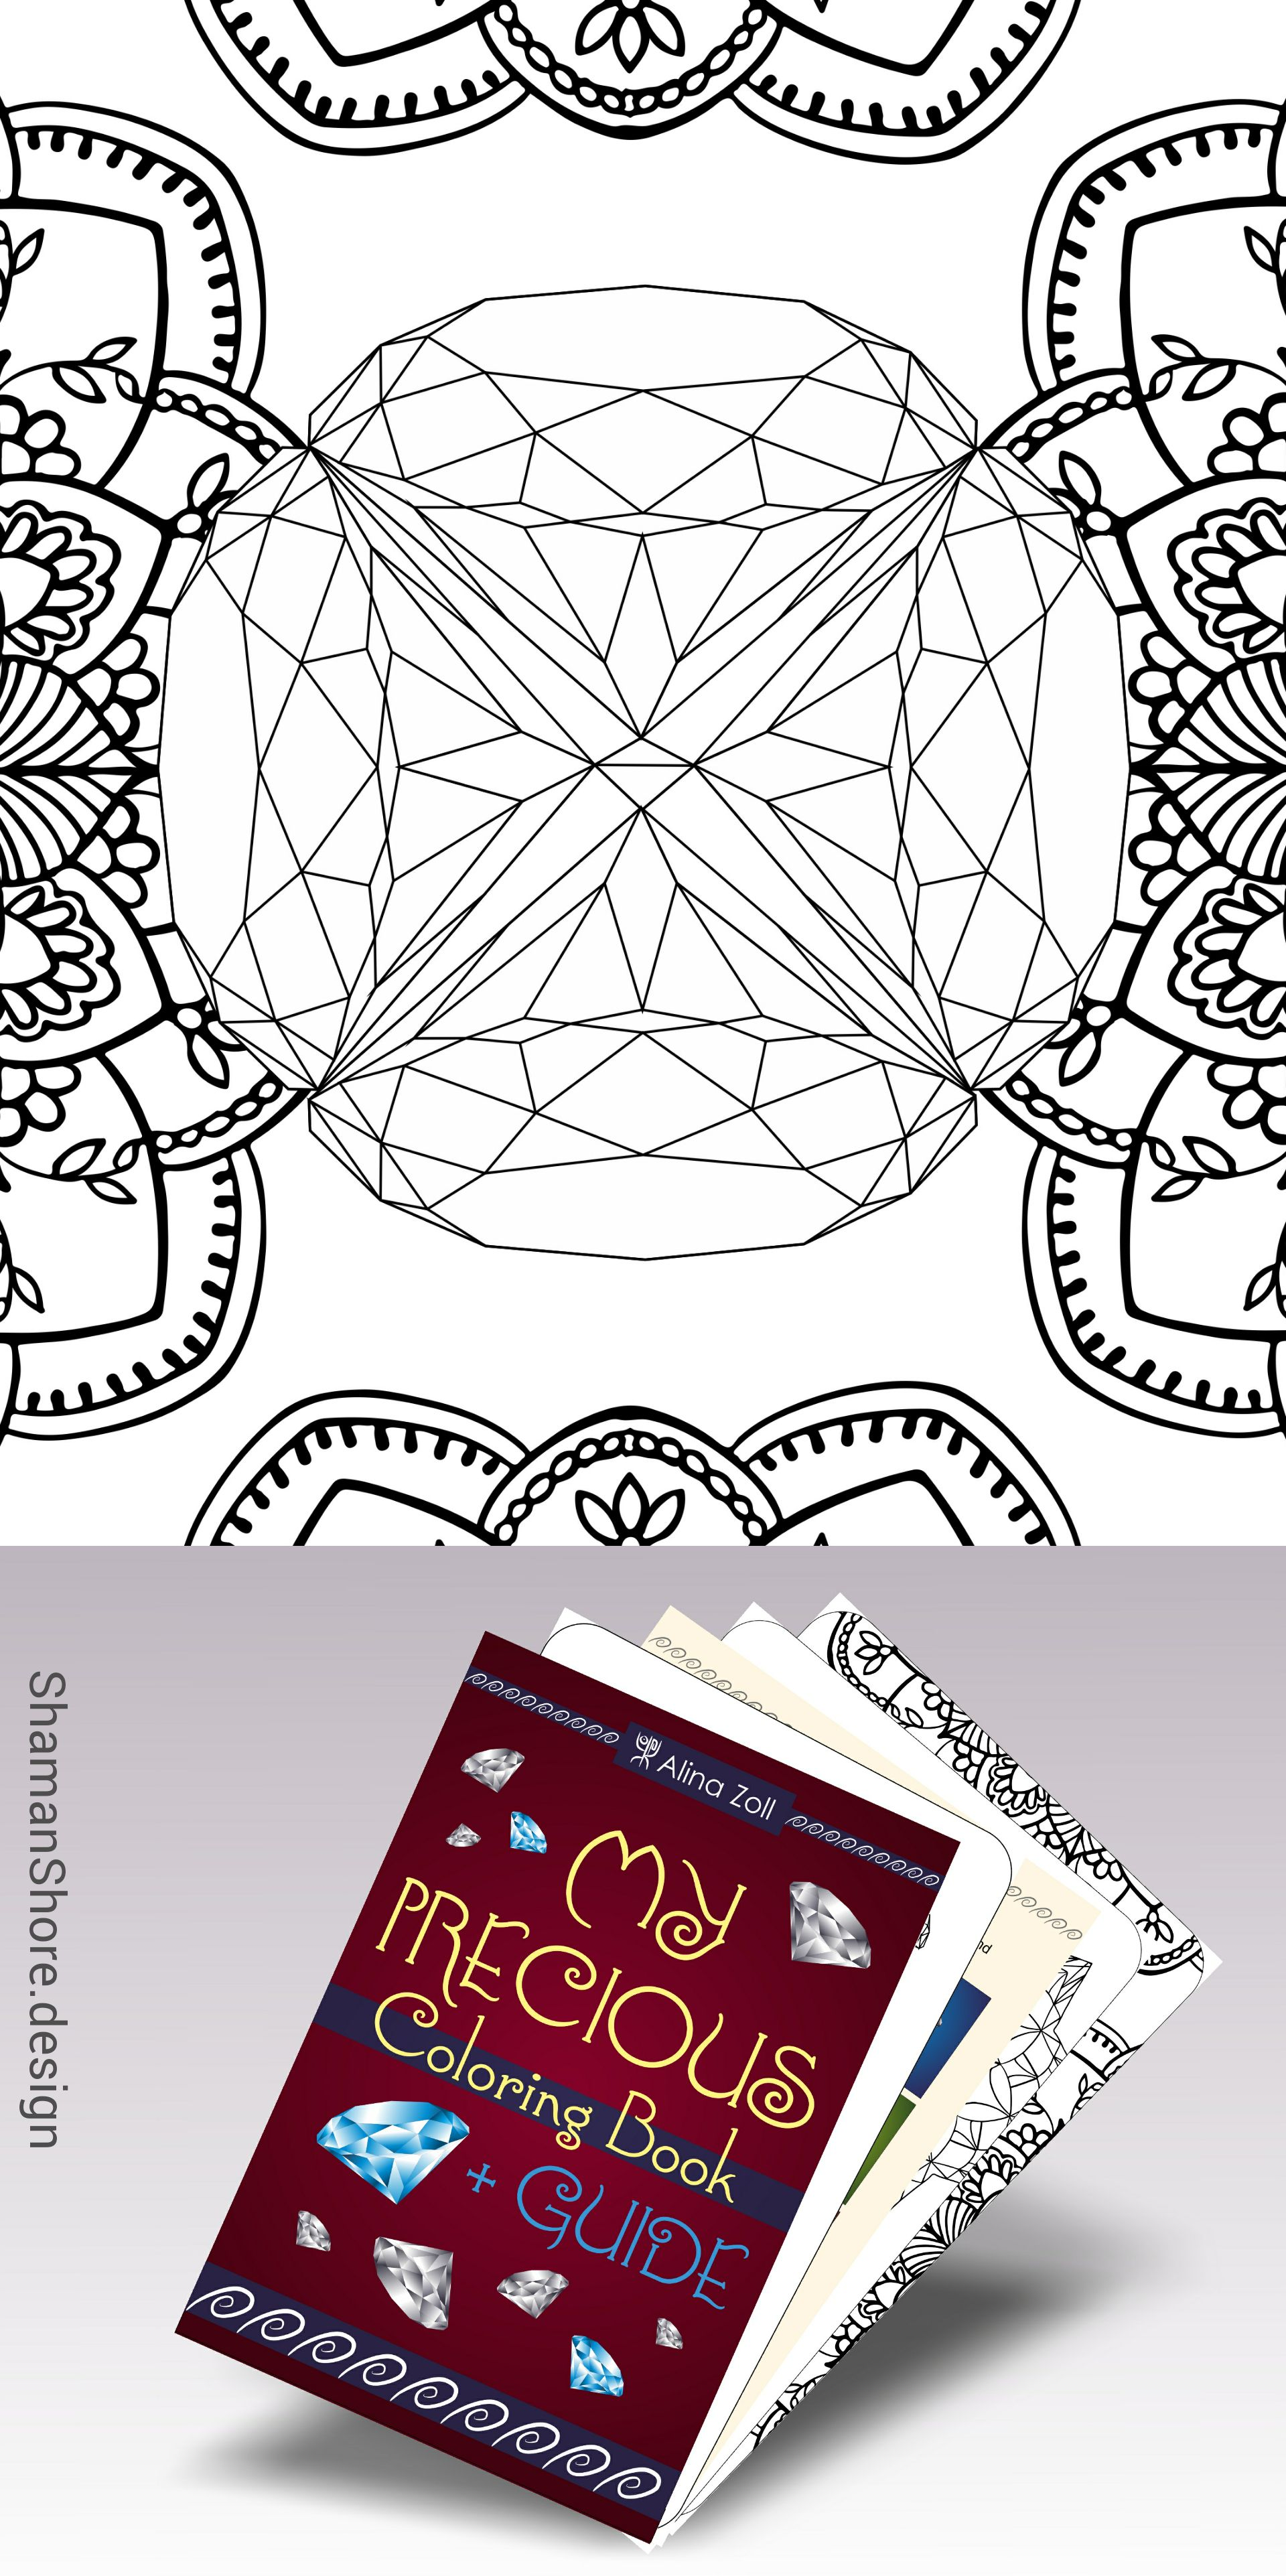 Printable Gemstone Coloring Pages For Grown Ups Diamond Tutorial Adult Book